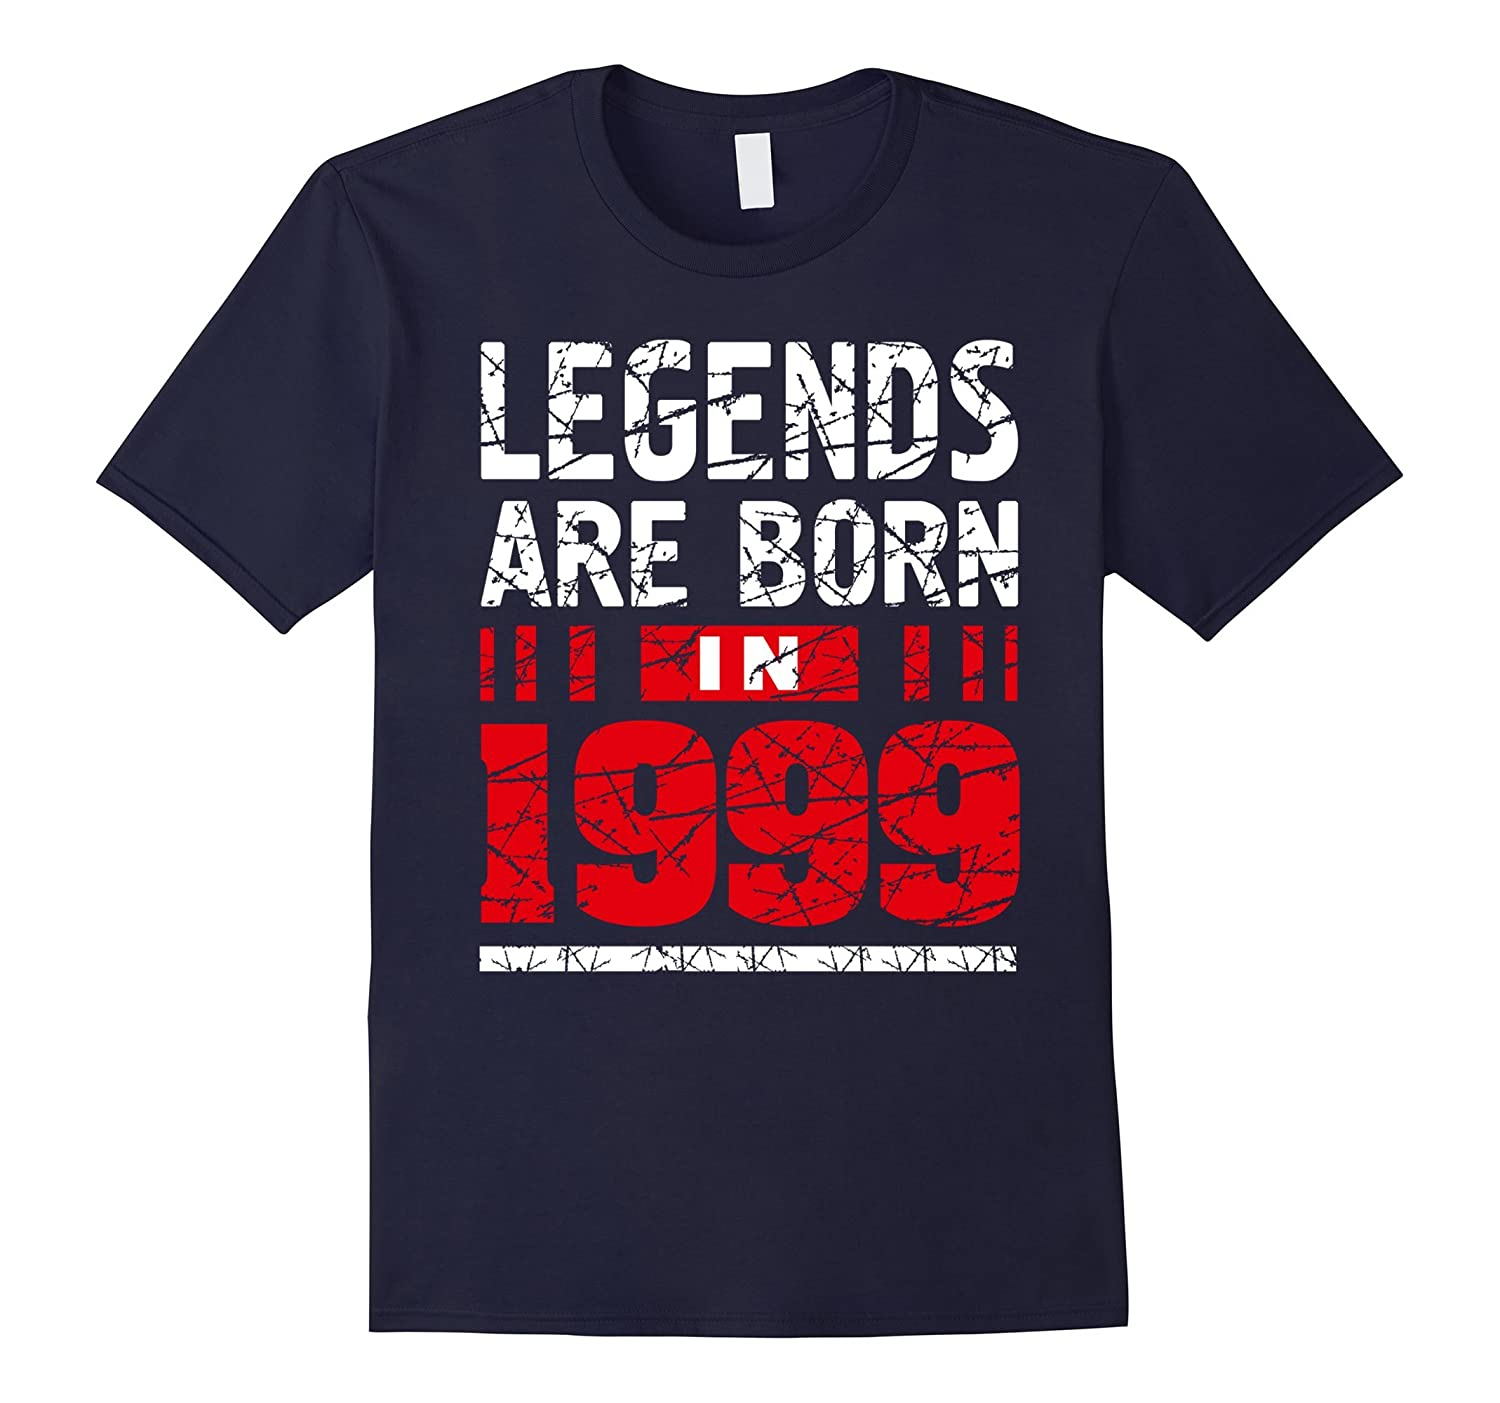 18th Birthday Gifts Boy Girls Legends Are Born in 1999 Shirt-CD